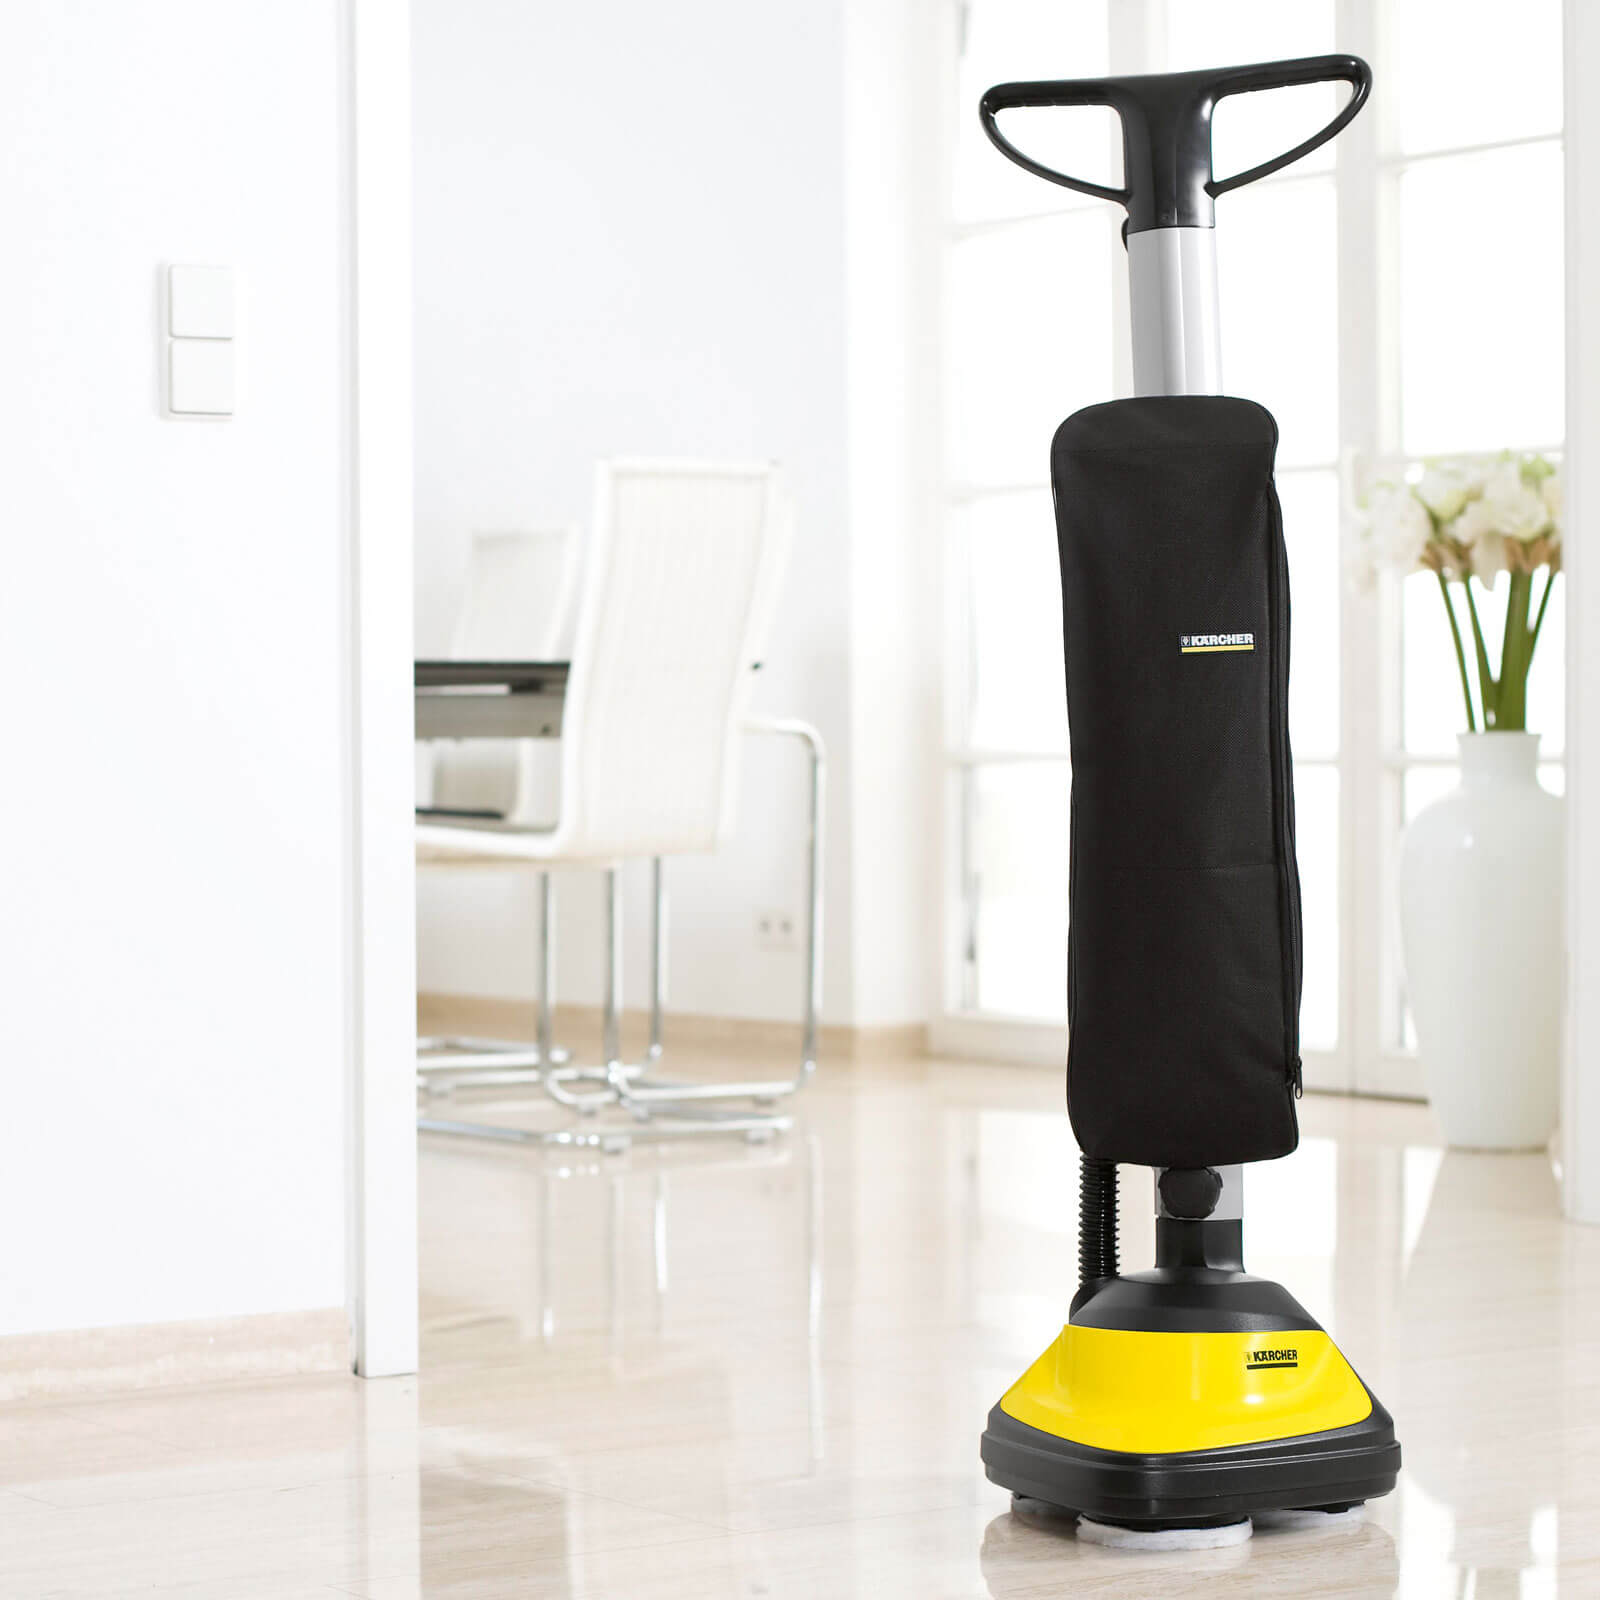 Electric scrubber for tile floors